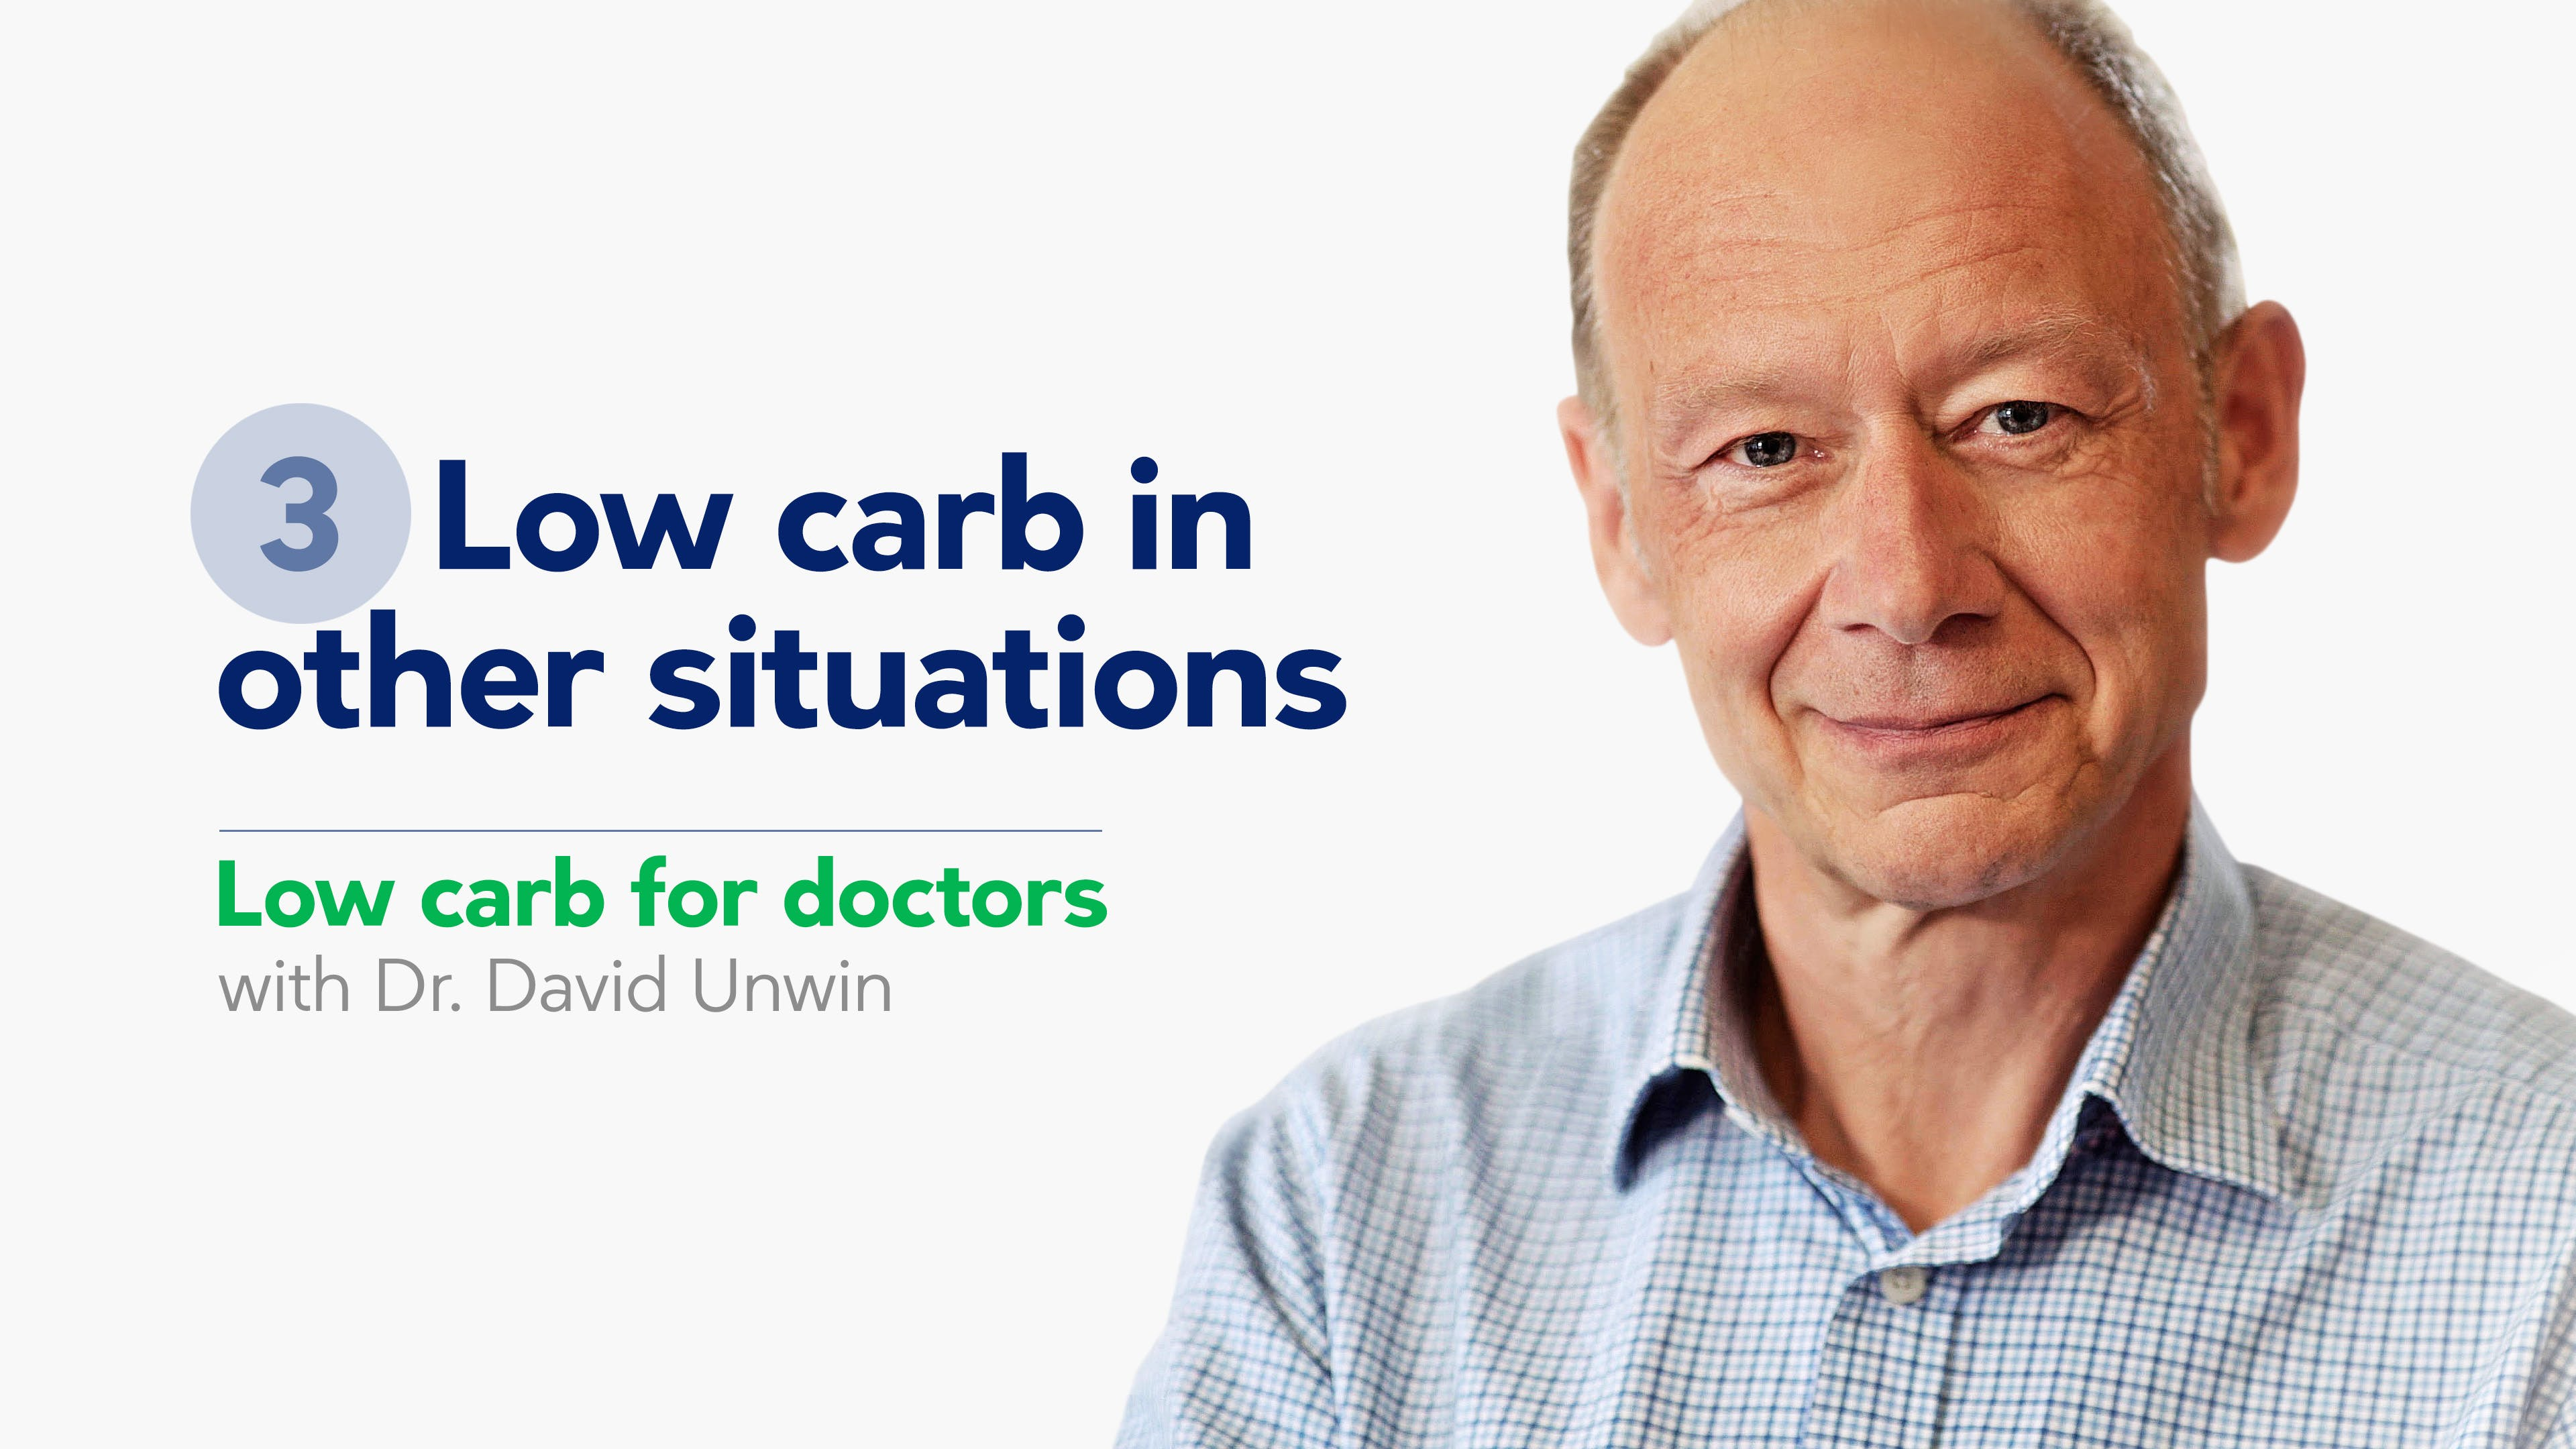 Low carb in other situations